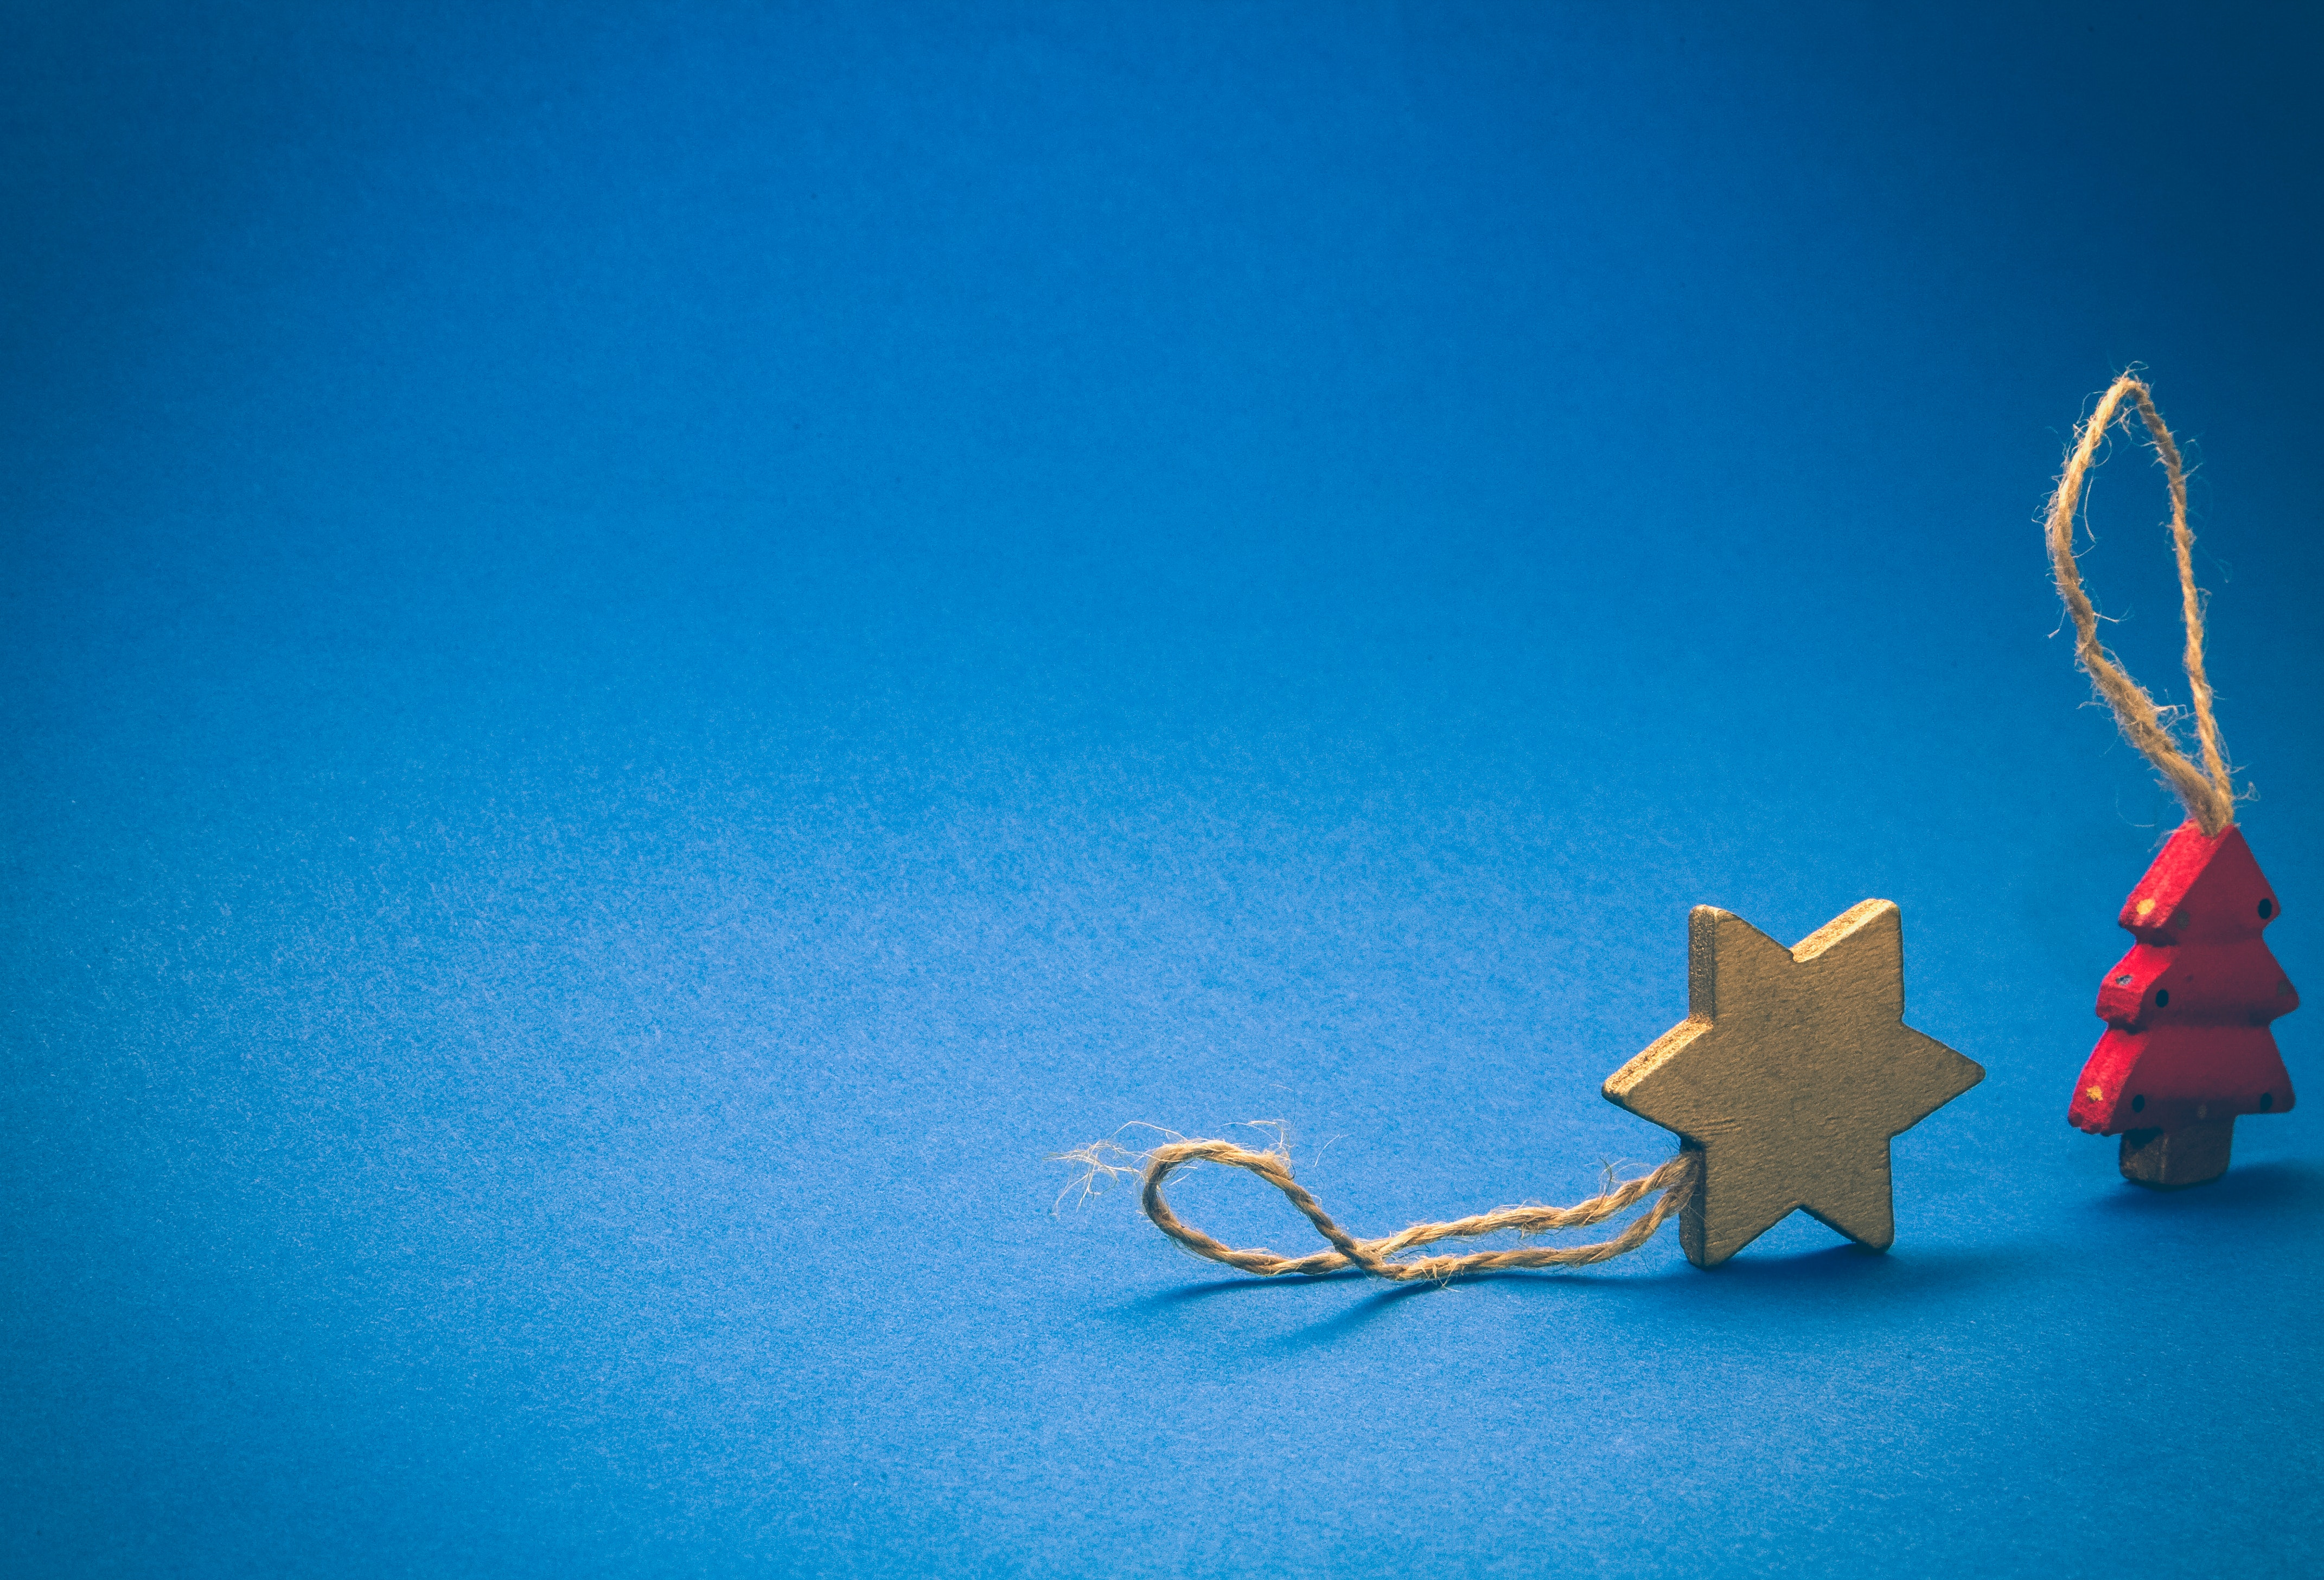 gold star of david ornament next to red christmas tree ornament